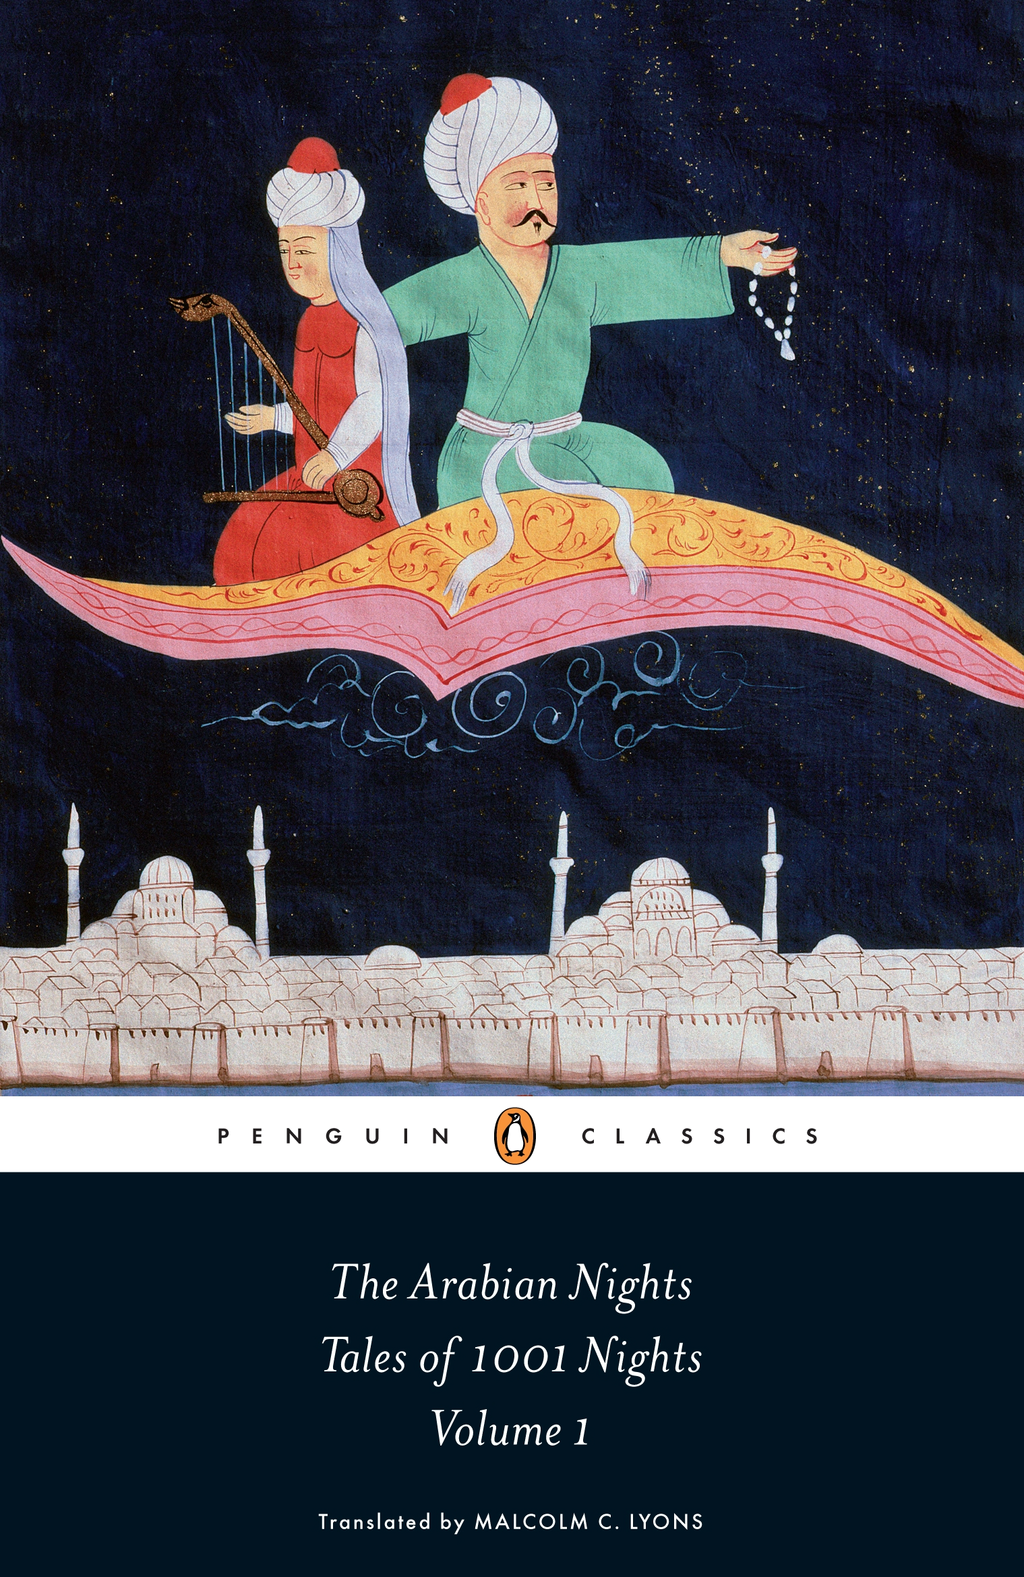 The Arabian Nights: Tales of 1, 001 Nights Volume 1